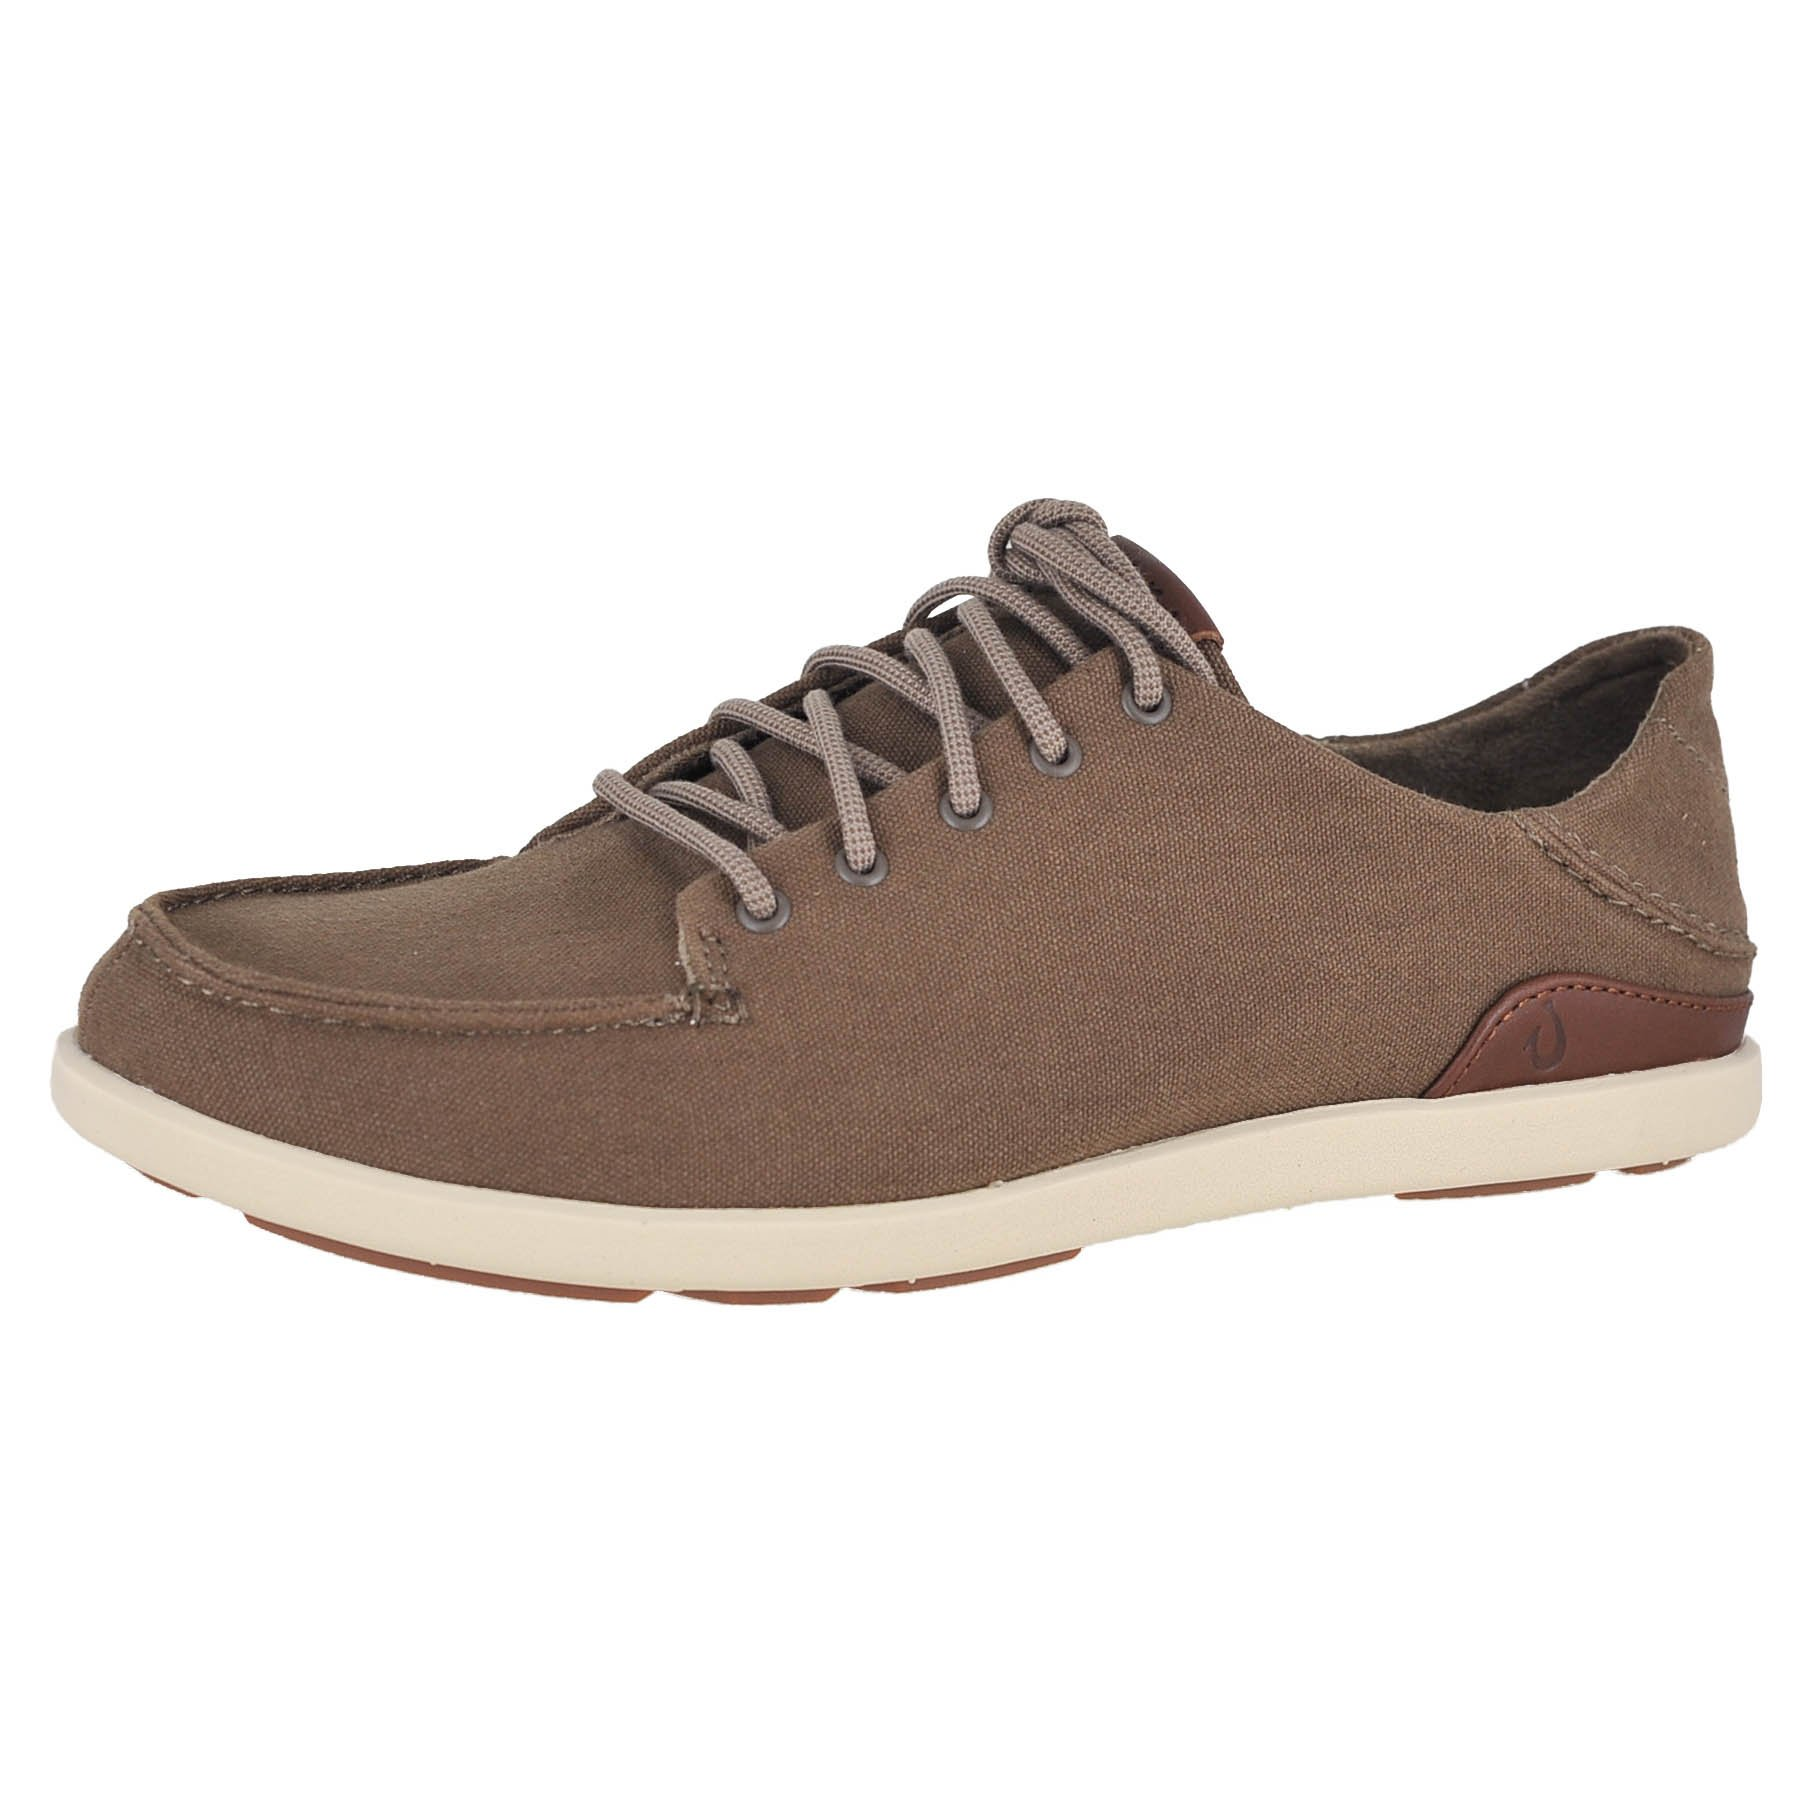 OLUKAI Manoa Mustang/Toffee Mens Oxfords Size 9.5M